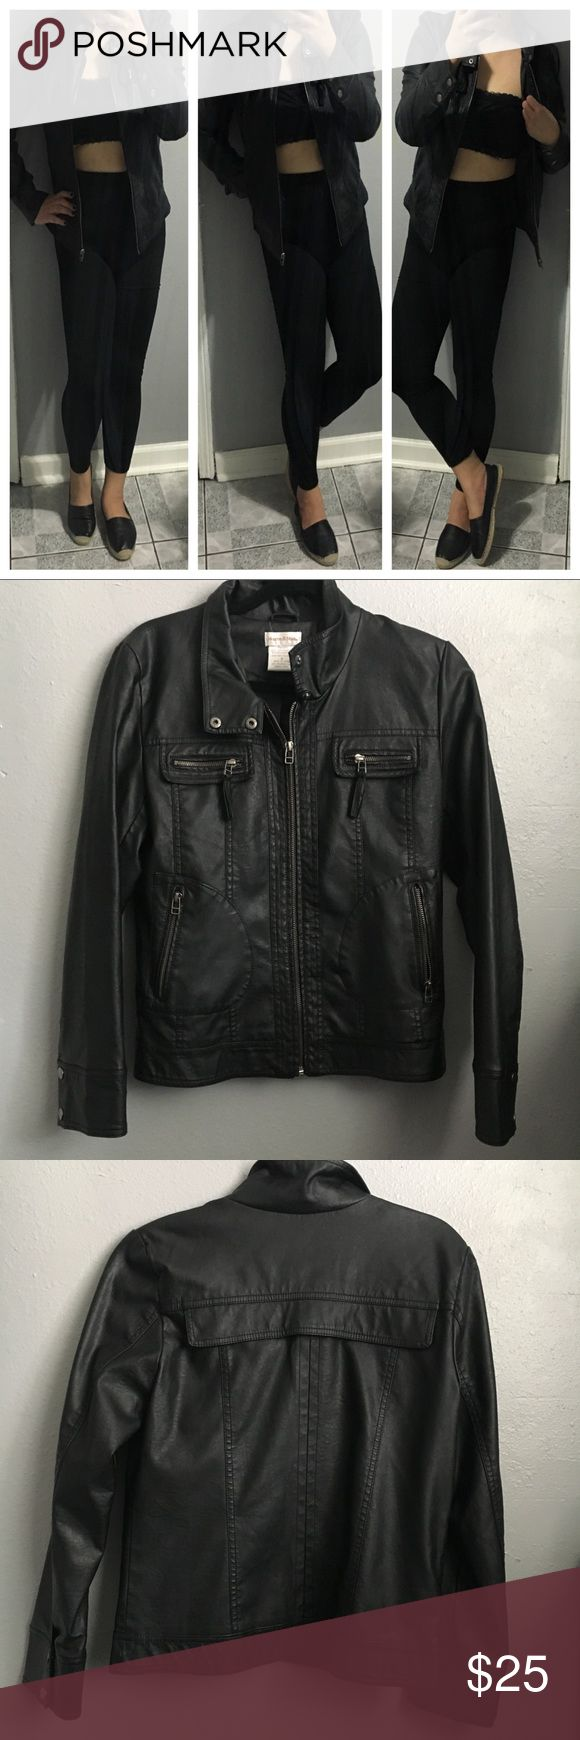 """Monroe and Main Women S Black Faux Leather Jacket Monroe and Main Women's Small Black poster Leather Jacket   Like New, worn 2-3x  Size S Shell: 50% Polyester Lining: 100% Polyester  Armpits to armpits: 17 1/2"""" Length: 24"""" Made in China Monroe & Main Jackets & Coats"""